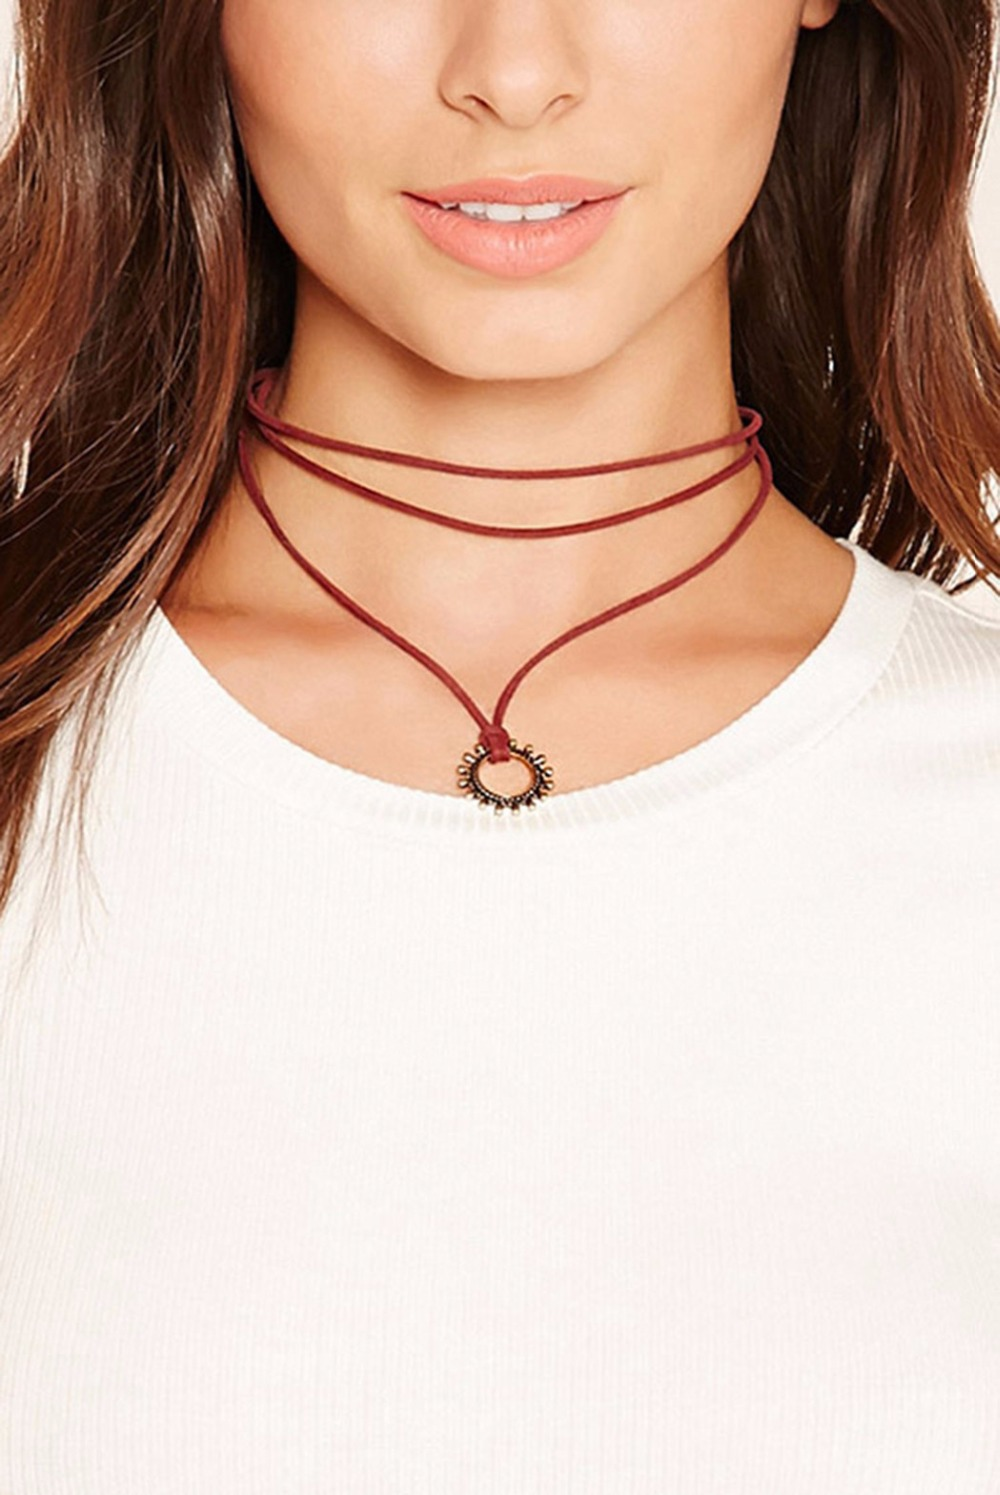 High Quality Bohemian Gypsy Charm Choker Necklace Three Layers Red Leather Chain Fashion Pendant Necklaces For Women Jewelry chain